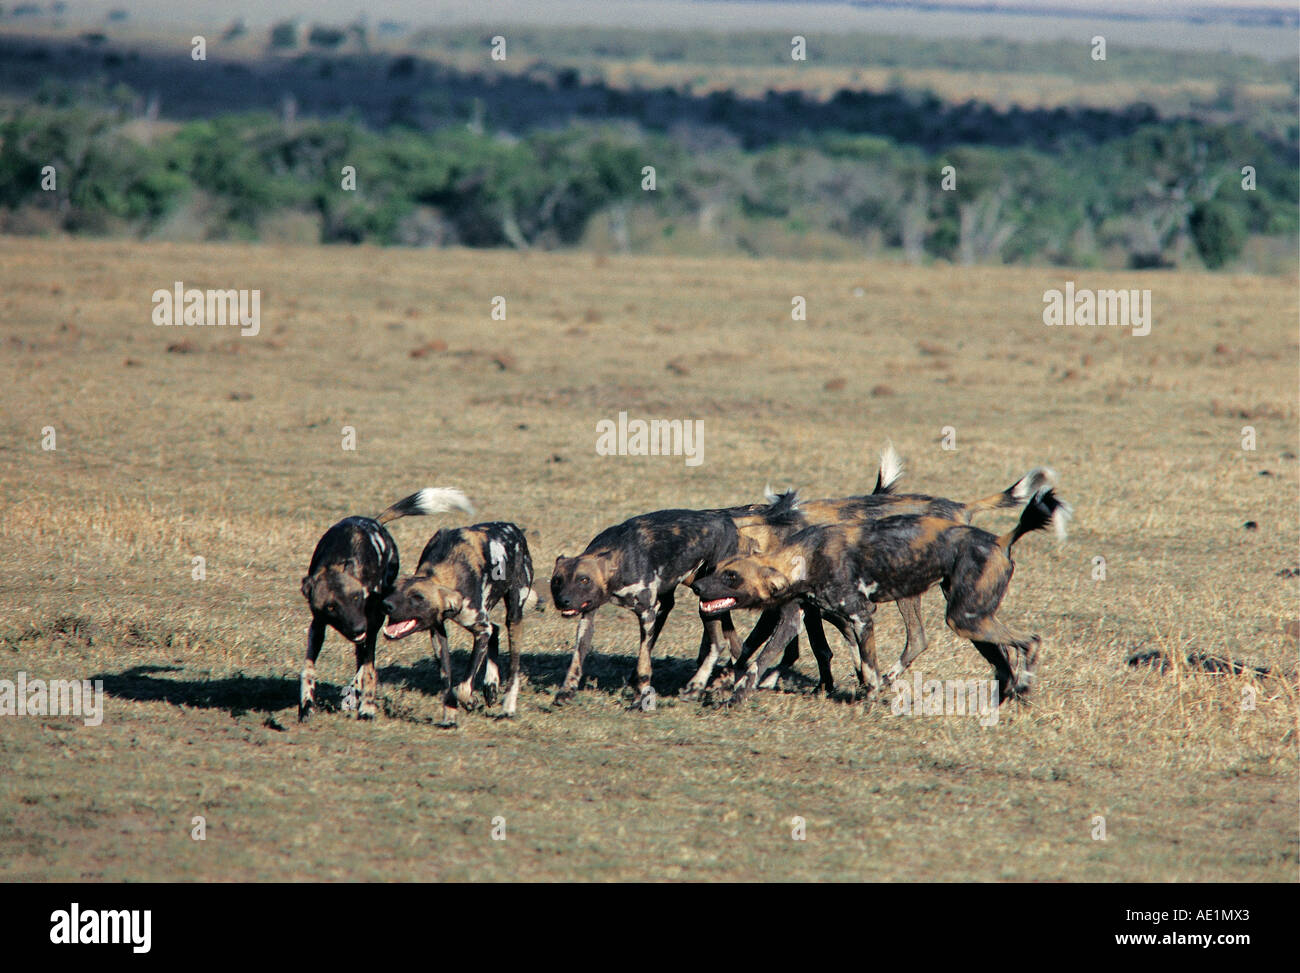 African Wild Dogs greet each other prior to a hunt Masai Mara National Reserve Kenya East Africa - Stock Image